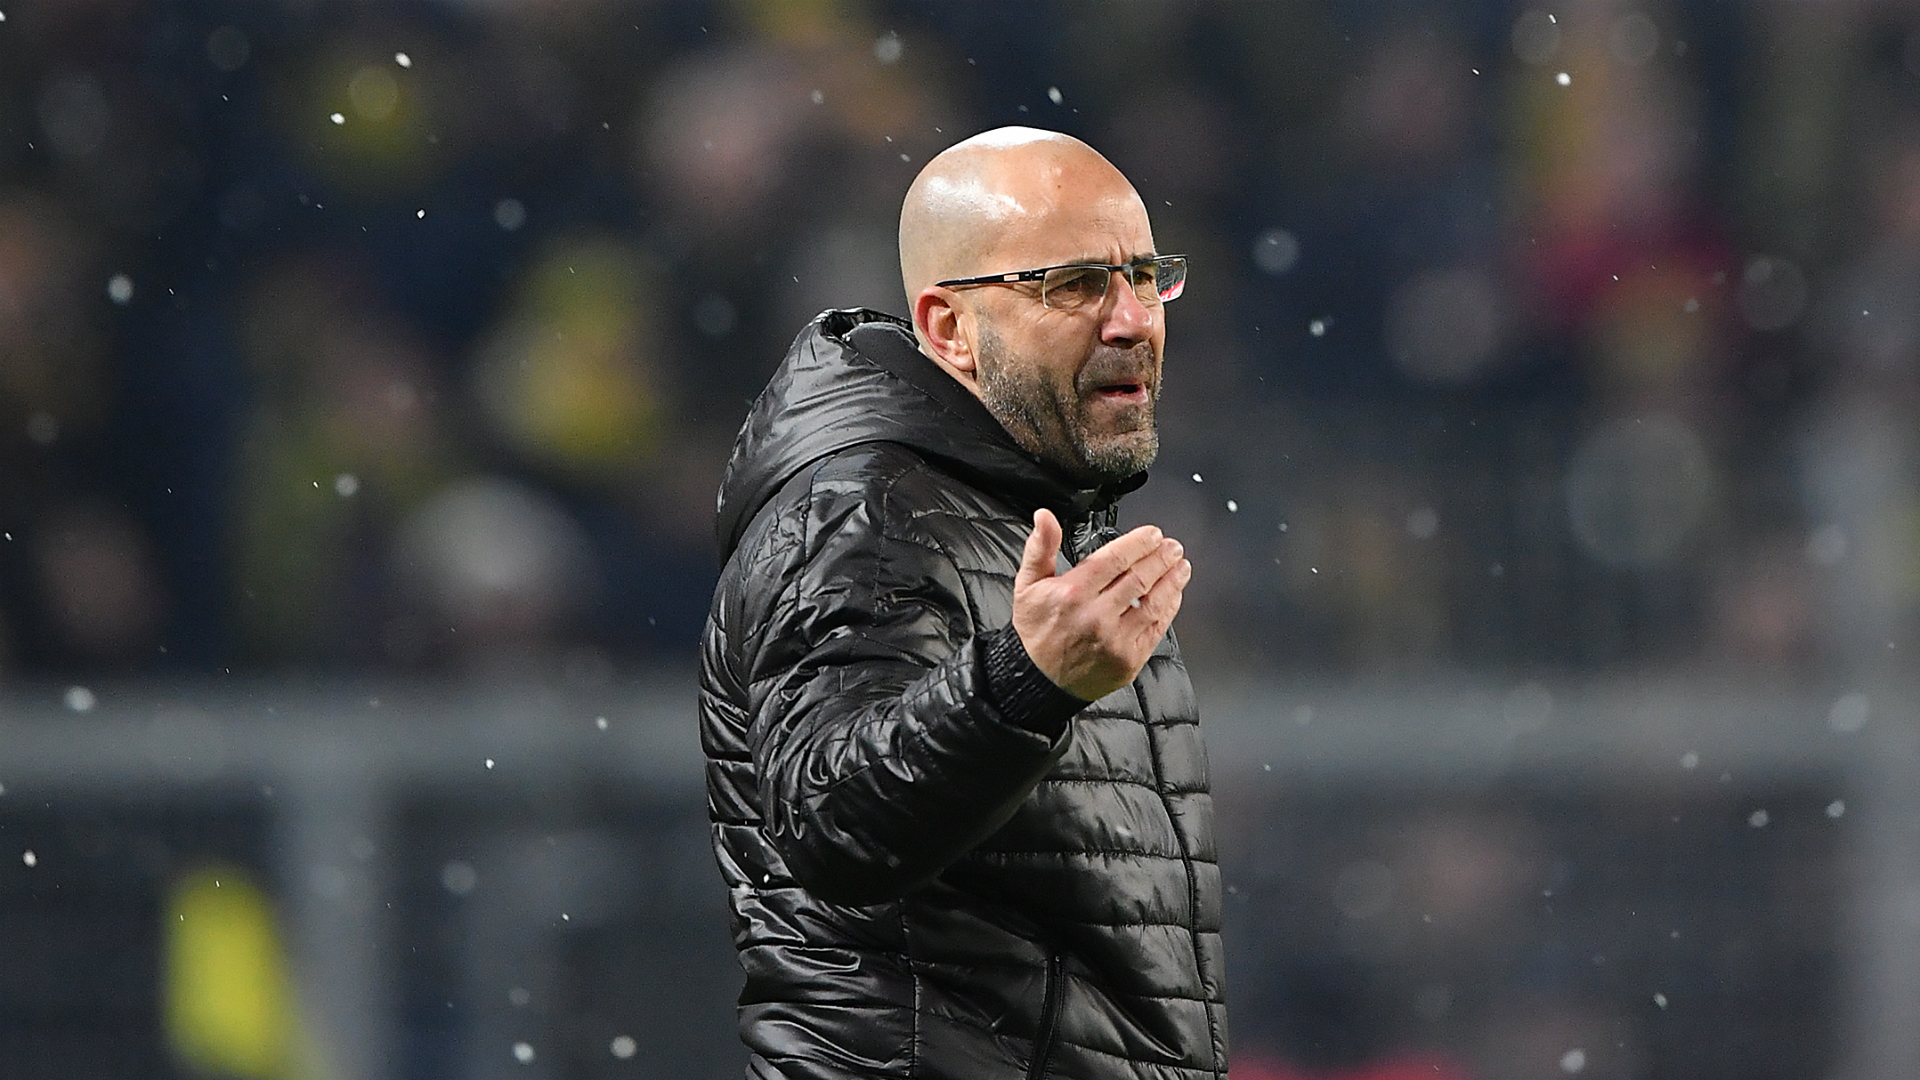 Borussia Dortmund sack Peter Bosz, Stoeger takes over as head coach